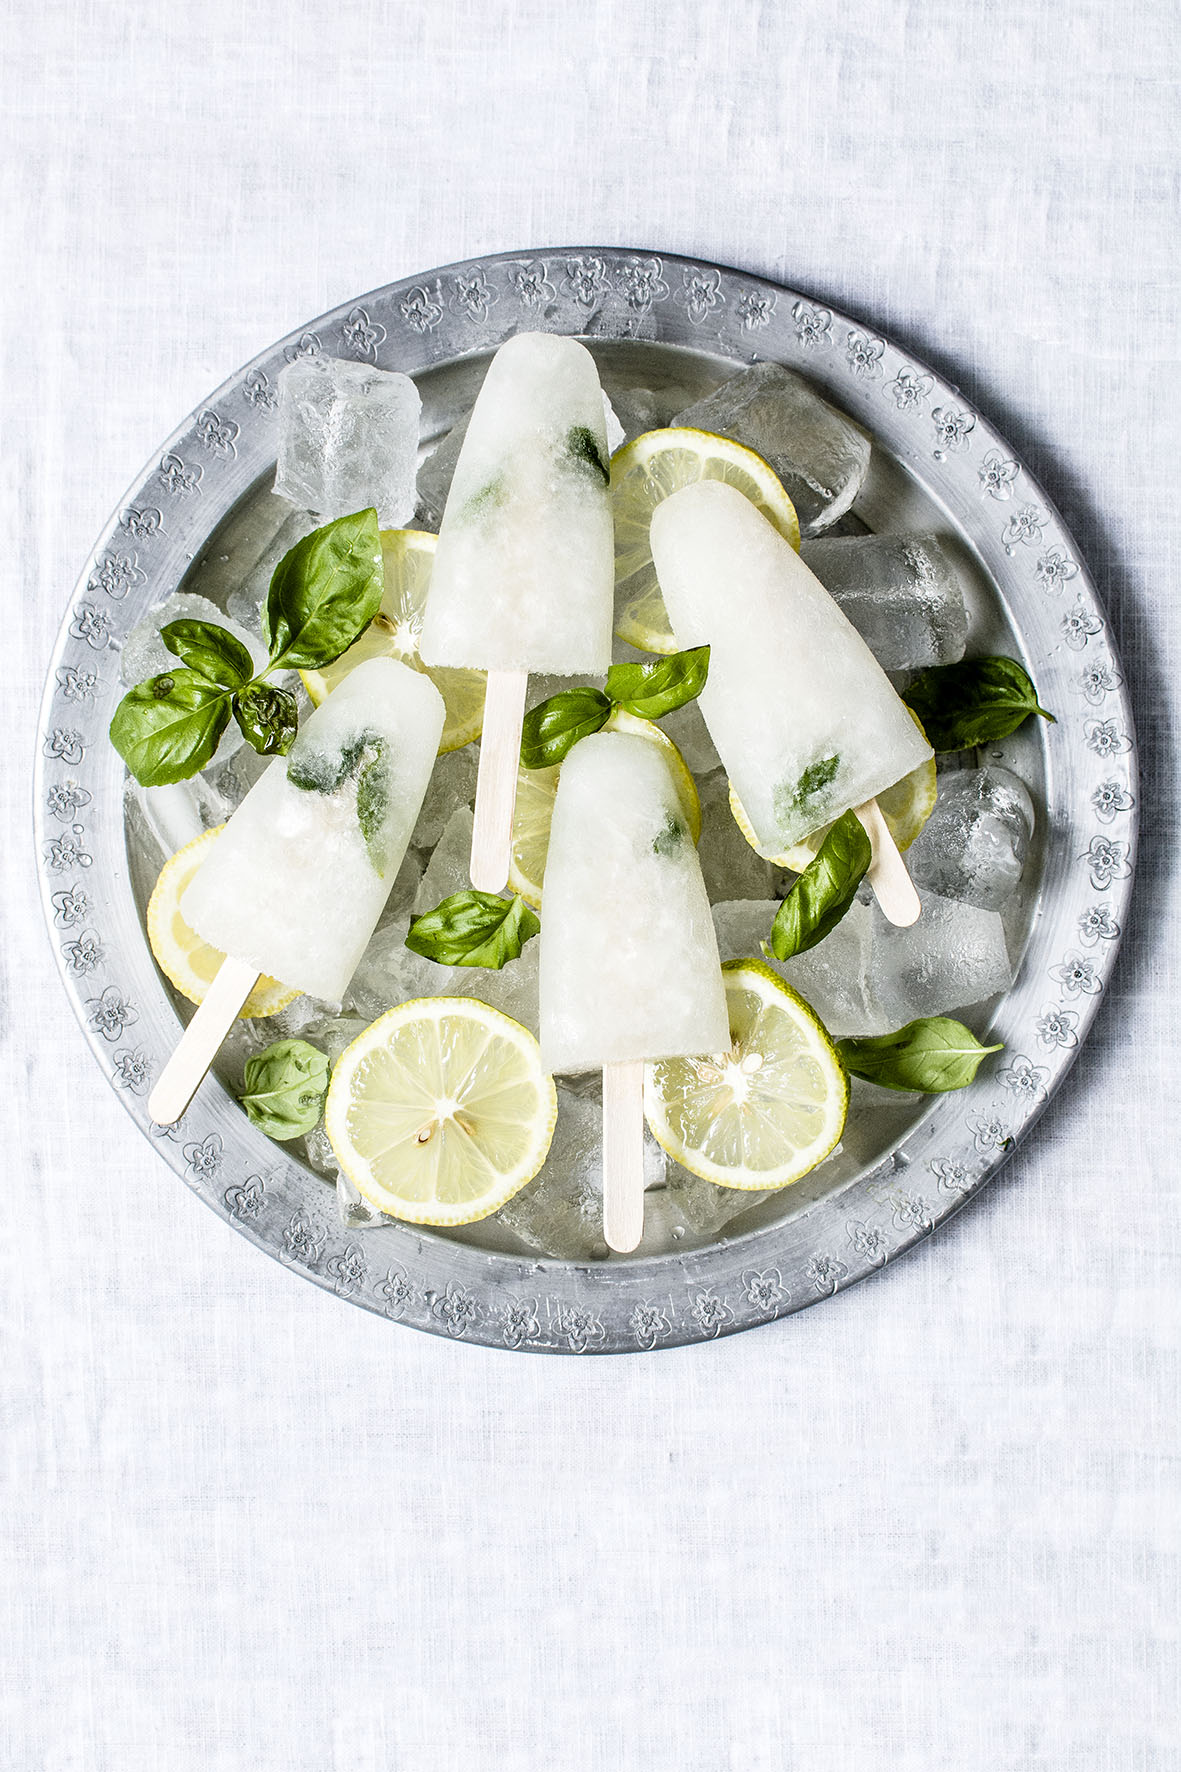 I'm rarely bored alone: Limoncello-Popsicles